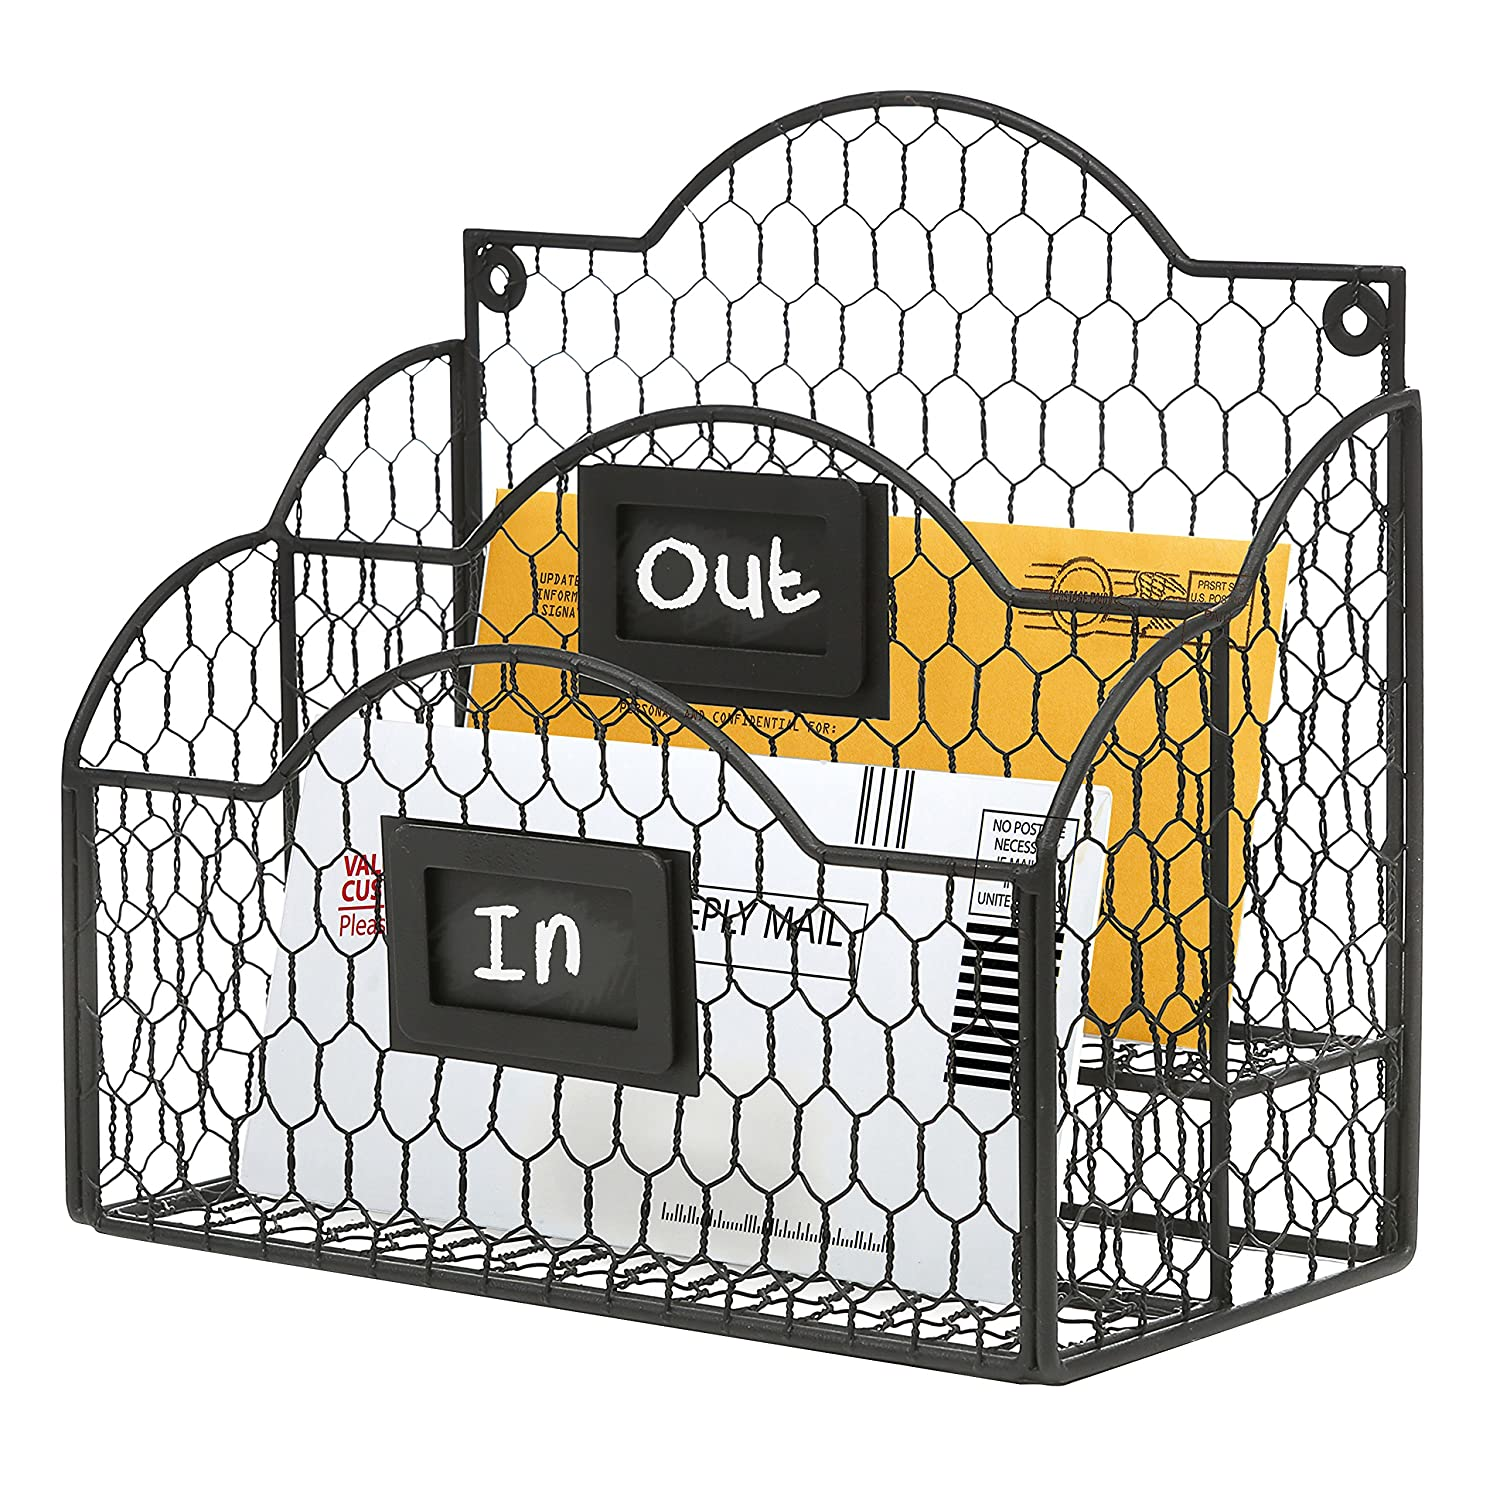 Black Metal Chicken Wire Wall Mountable Mail Sorter, Desktop Stationery Organizer w/Chalkboard Label